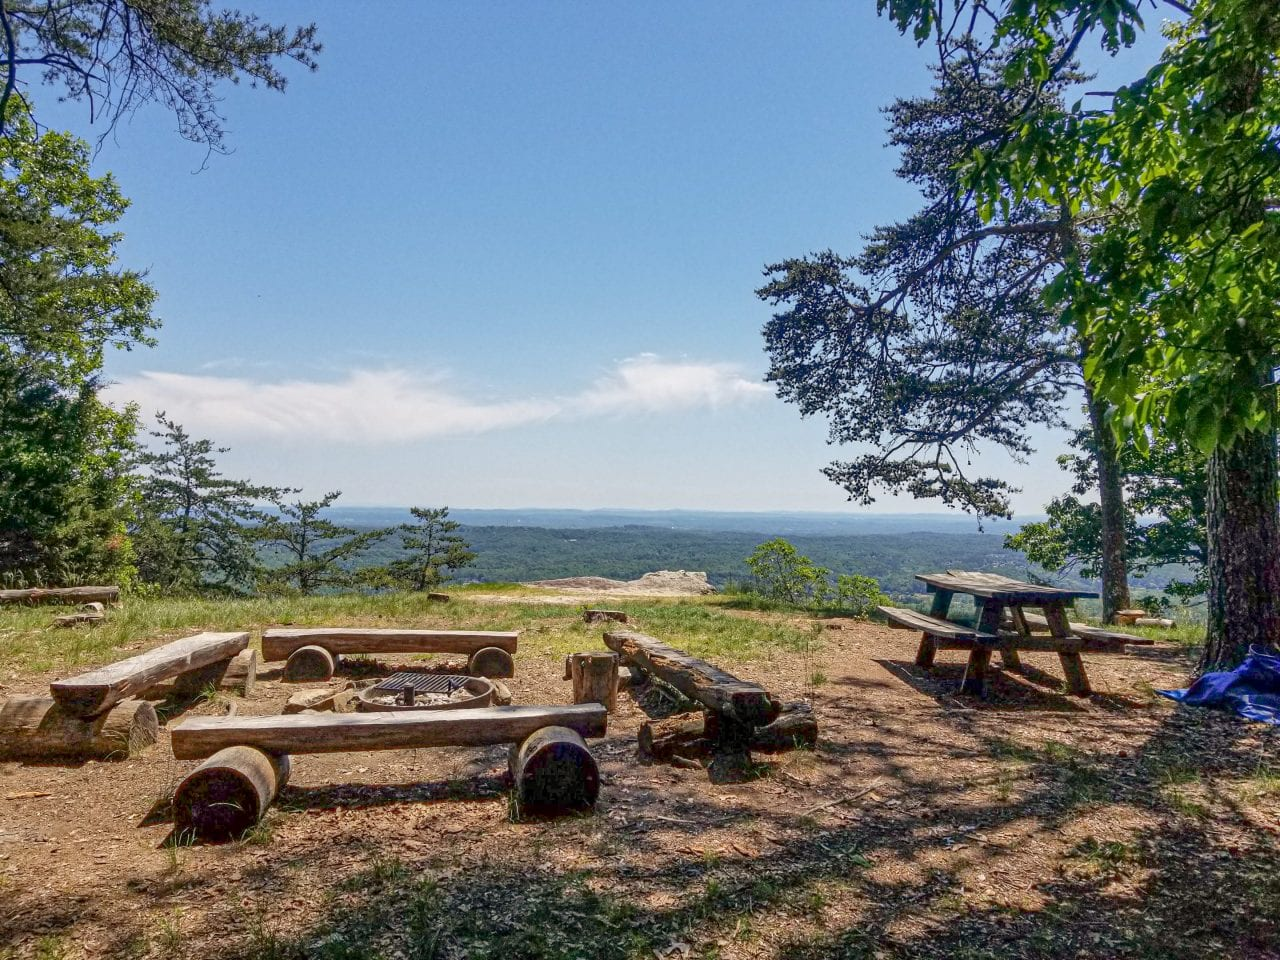 Bluffview picnic area